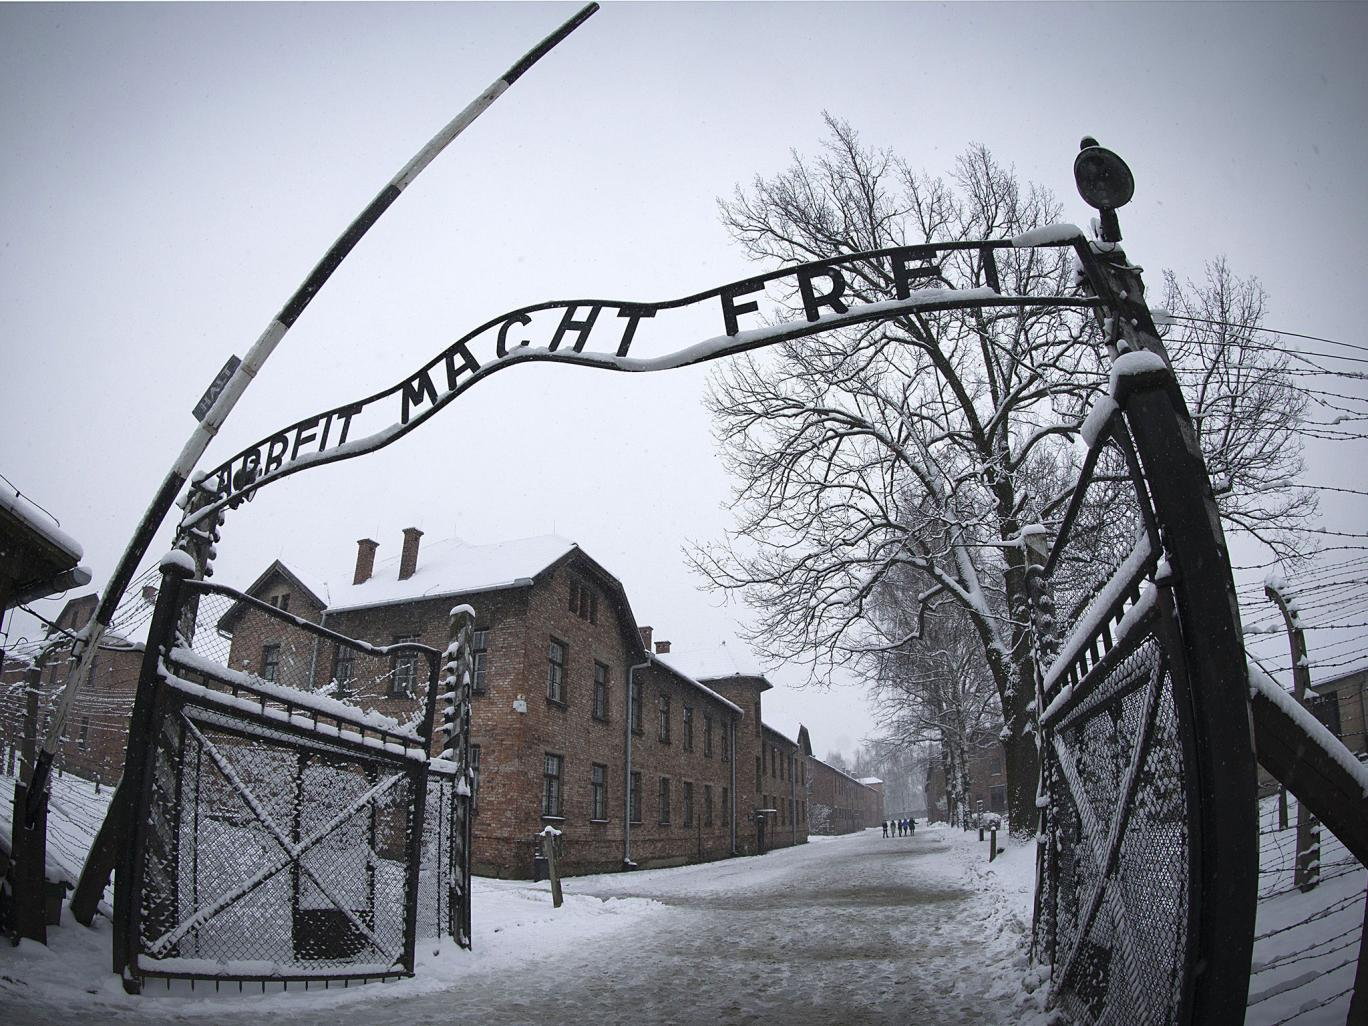 The entrance to the former Nazi concentration camp Auschwitz-Birkenau with the lettering &;Arbeit macht frei&; (&;Work makes you free&;)